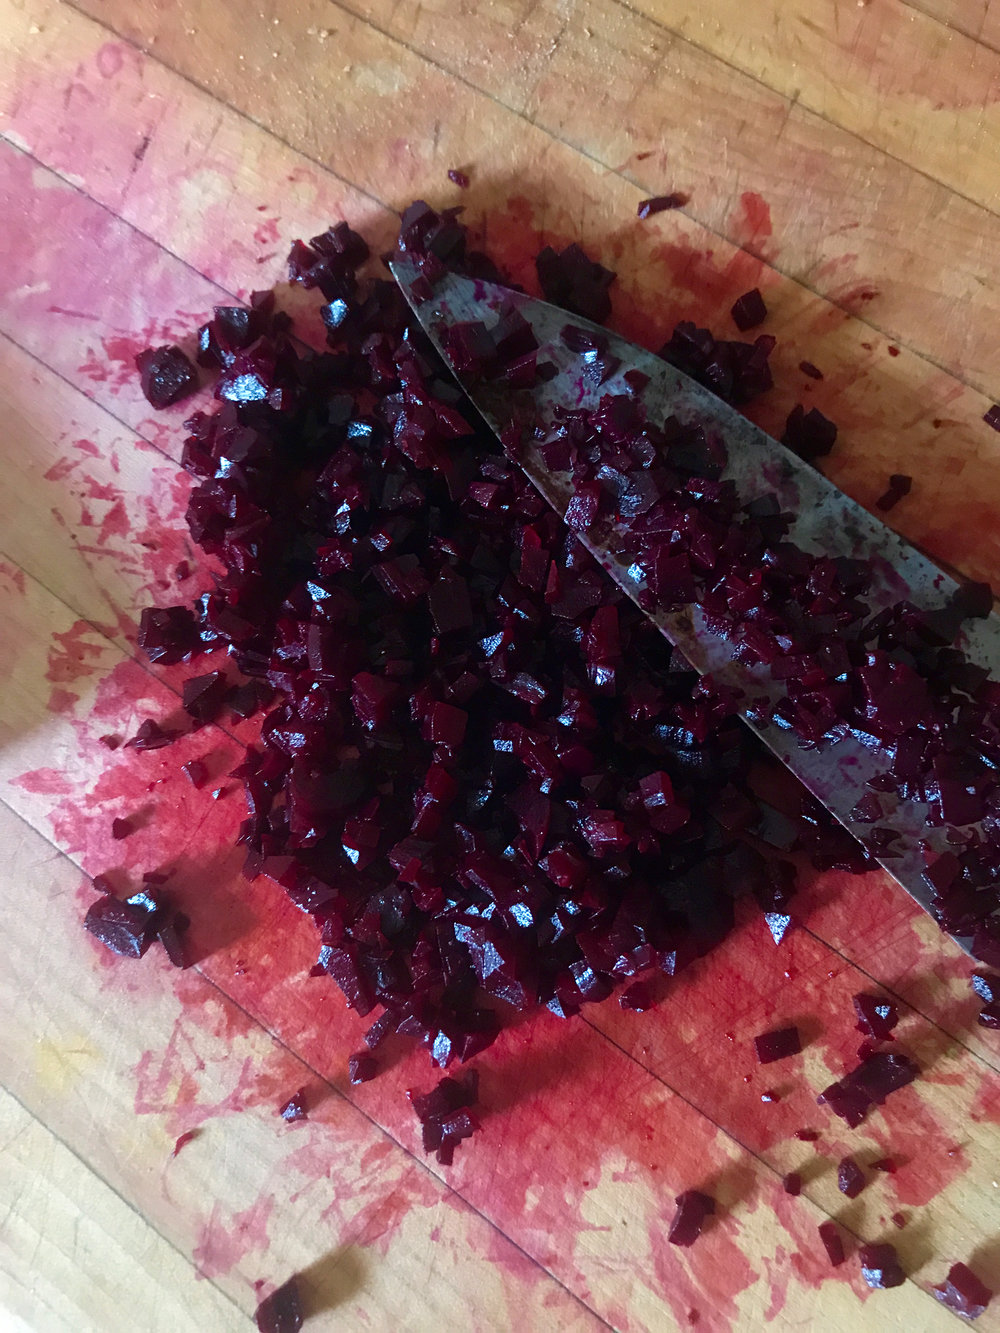 Finely mincing beets - it's not blood, it's beet juice! Be careful, it stains.